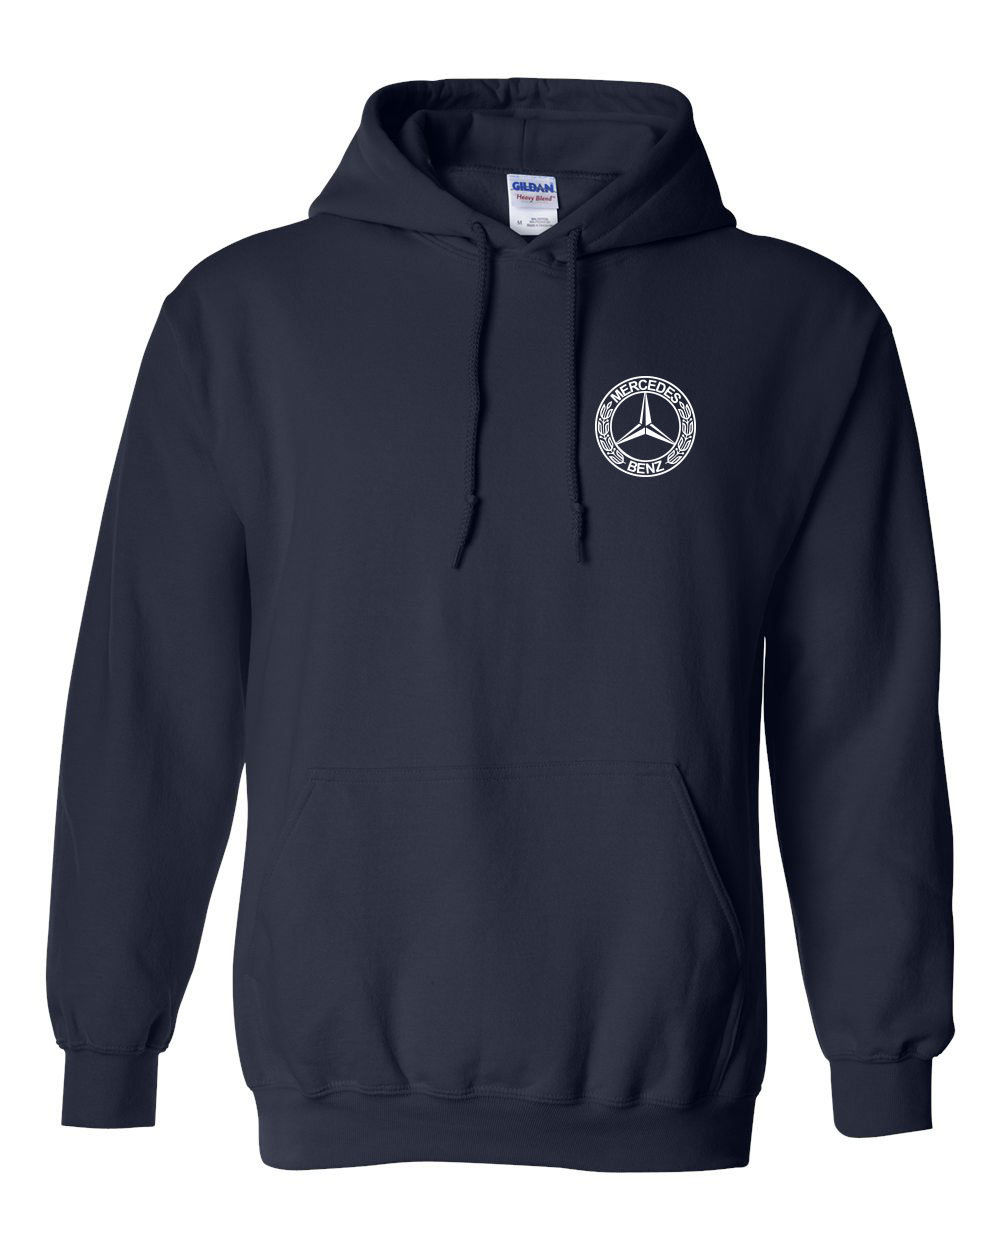 Navy hooded sweater her sweater for Mercedes benz hoodie